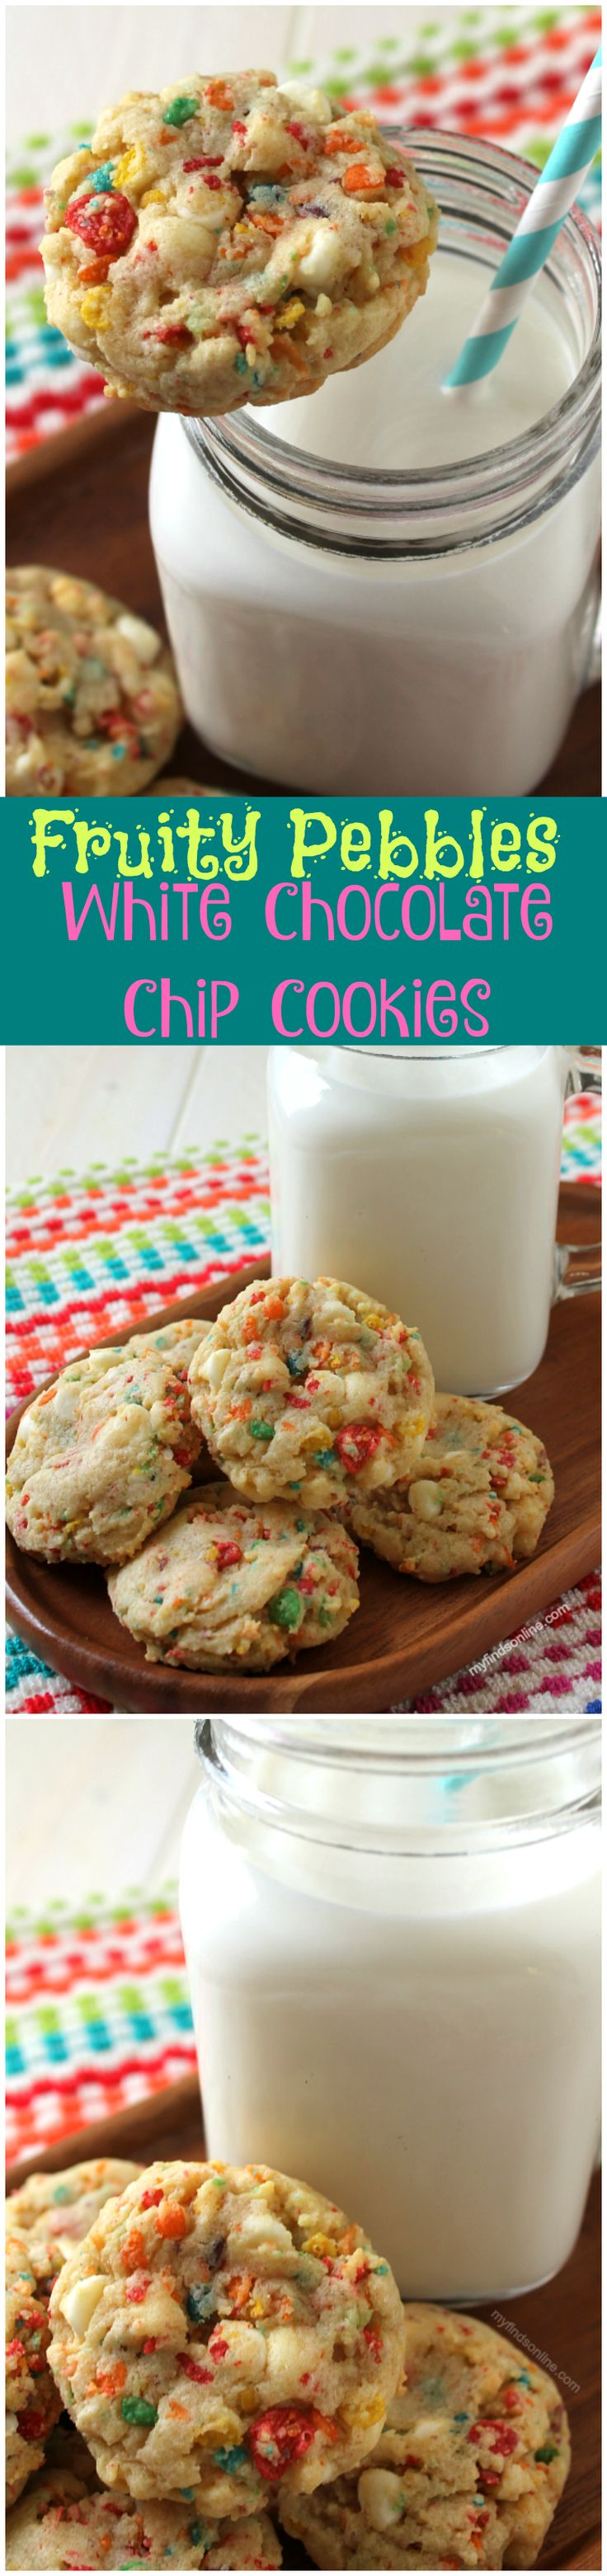 Fruity Pebbles White Chocolate Chip Cookies / myfindsonline.com